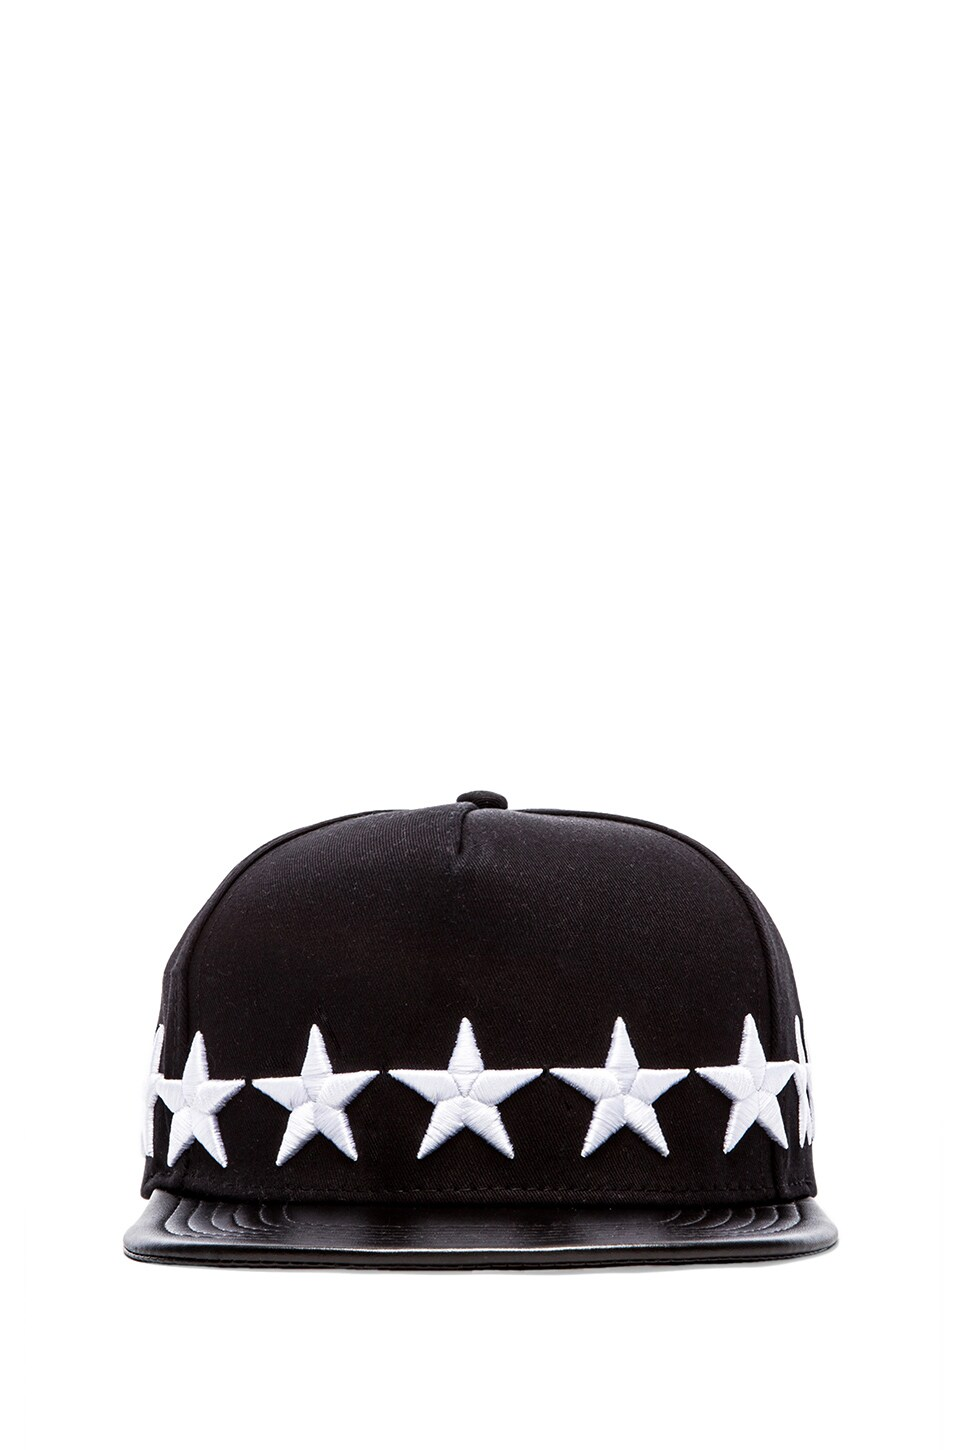 Stampd Liberty Hat in Black